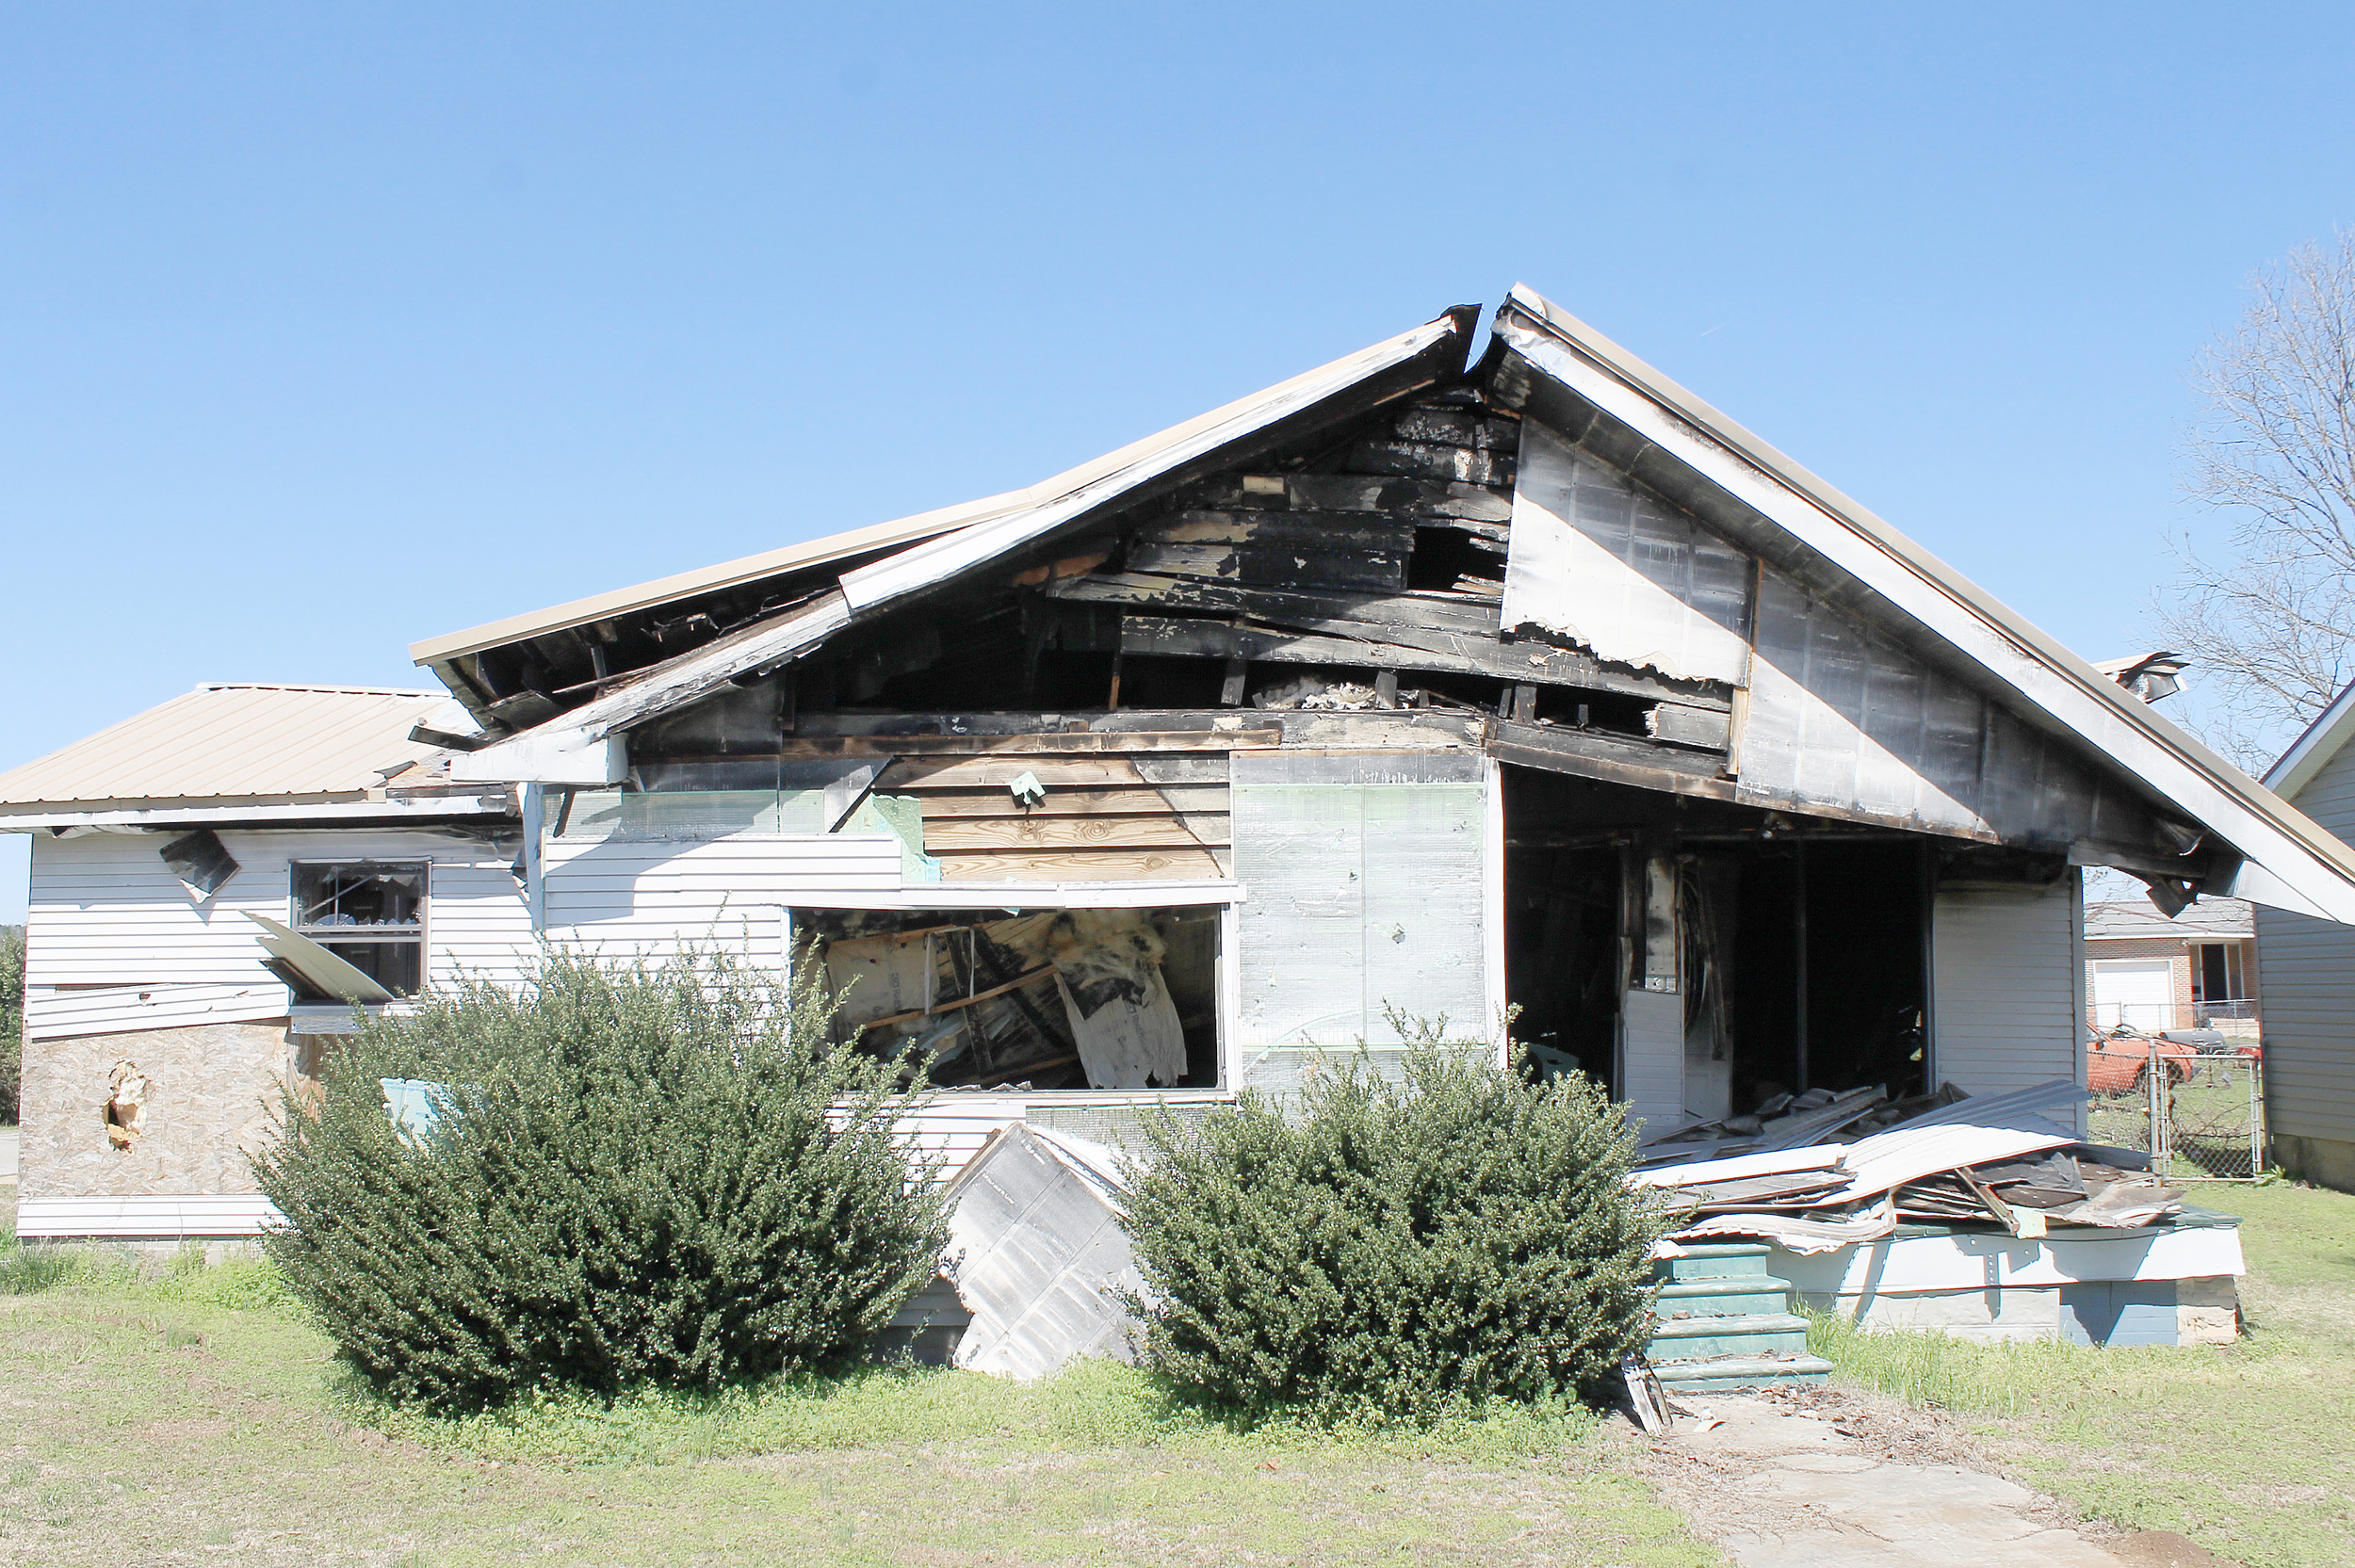 A vacant home damaged by fire on Mound Avenue is one of the properties being pursued for demolition under the city of Cordova's new dangerous buildings ordinance. Daily Mountain Eagle - Jennifer Cohron